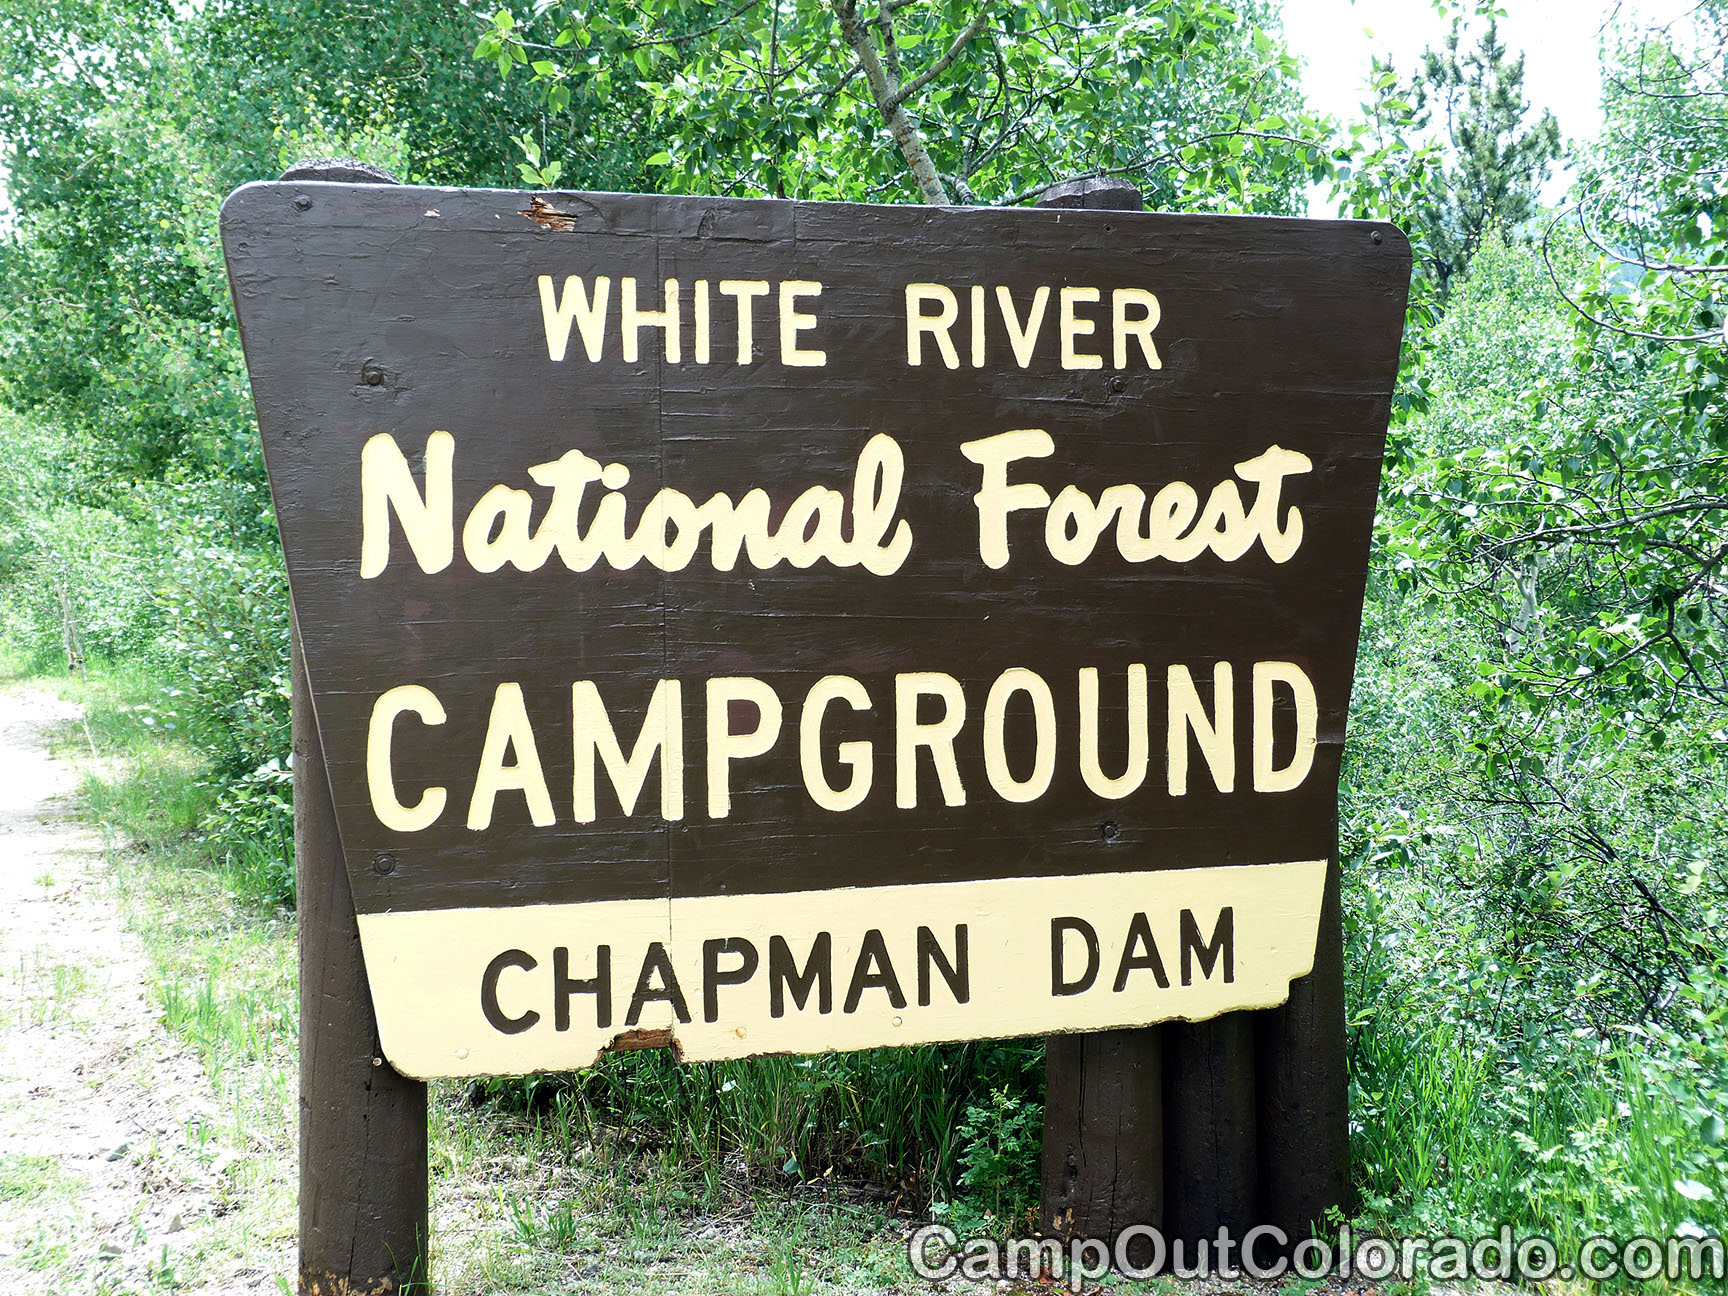 Campground-sign 1